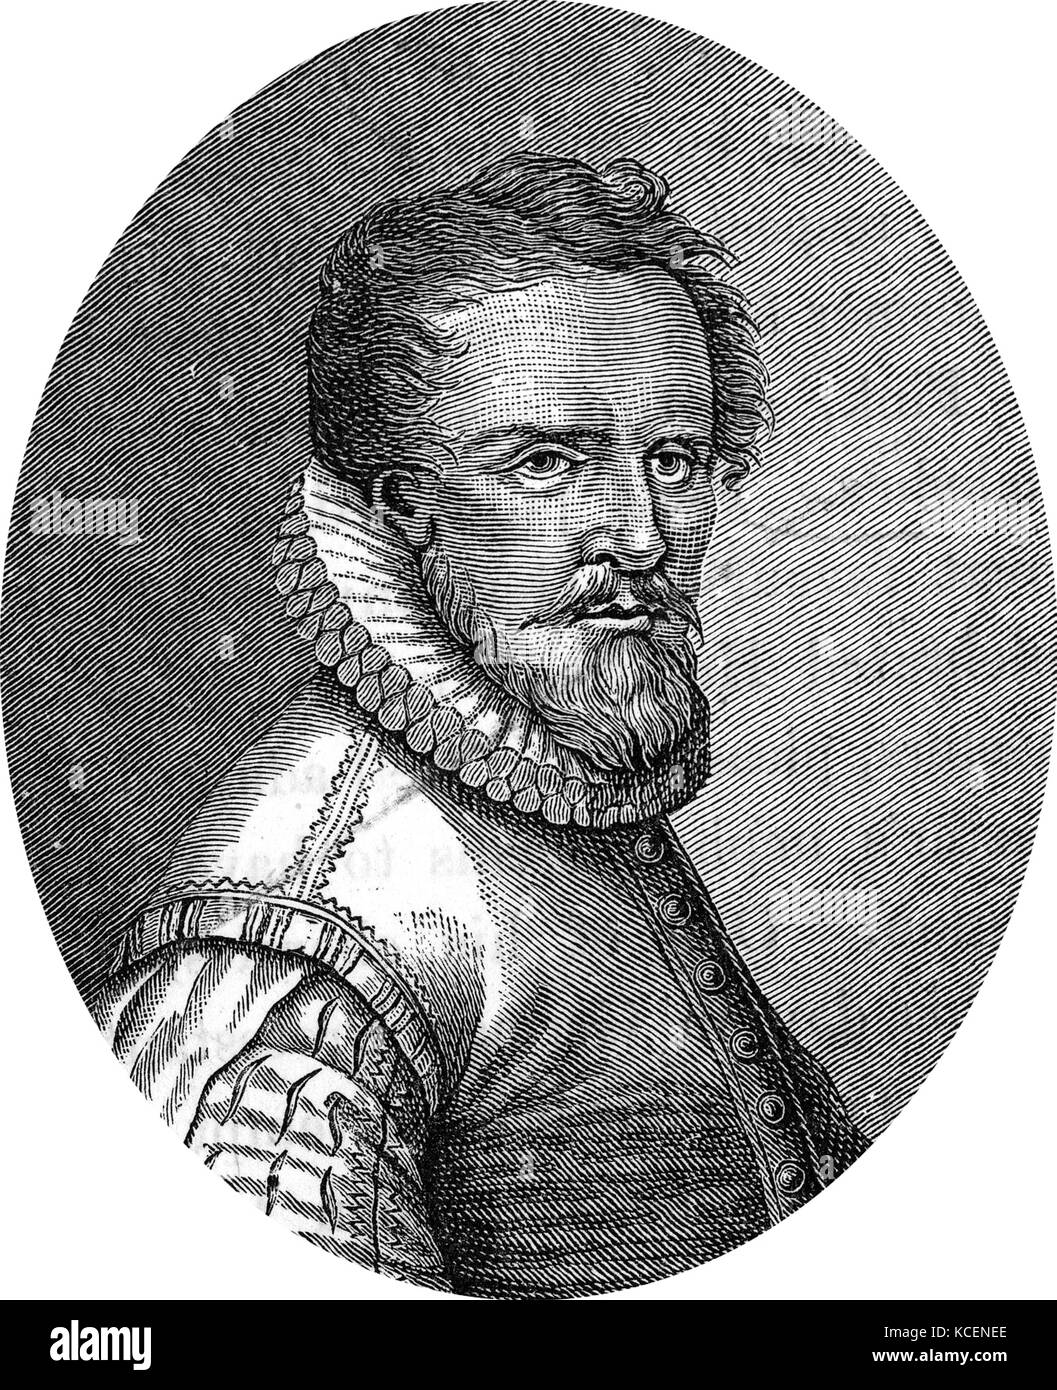 Portrait of Ludwig Senfl (1486-1543) a Swiss composer of the Renaissance. Dated 16th Century - Stock Image